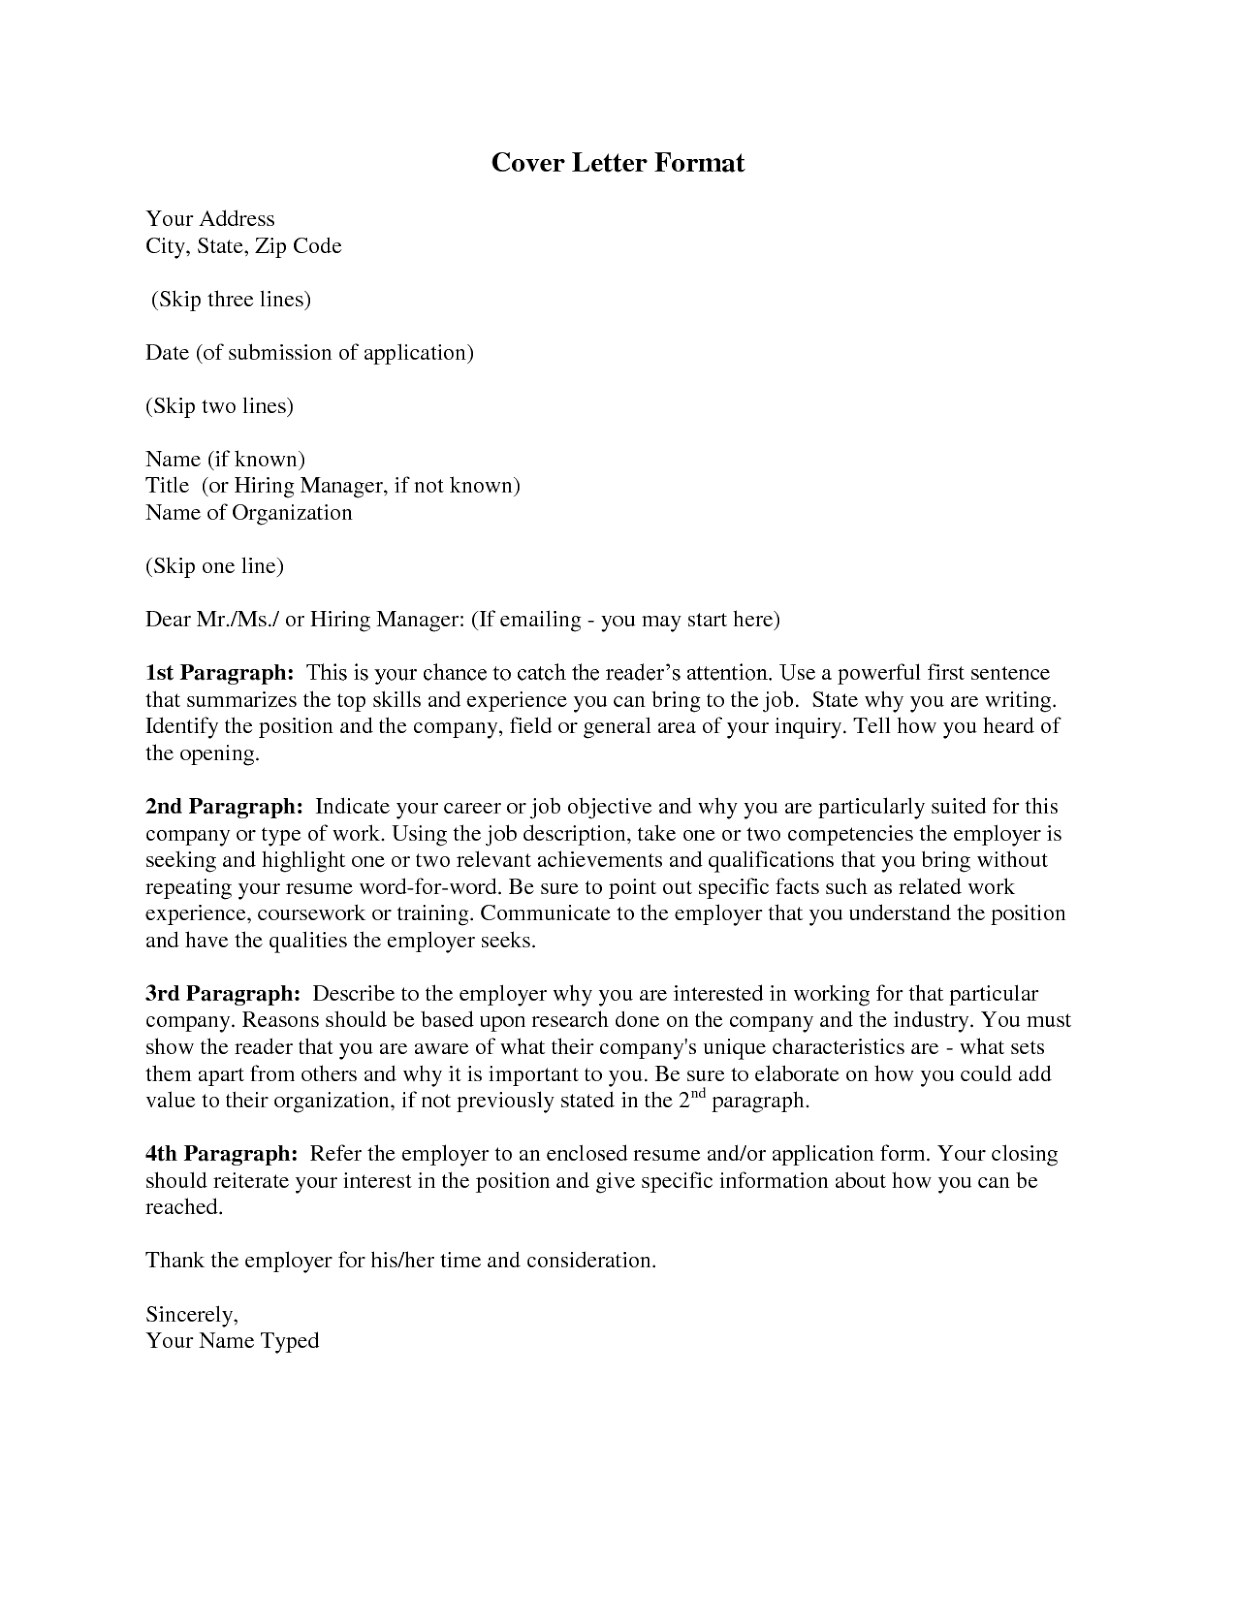 cover letter letter job - Cover Letter Applying Online